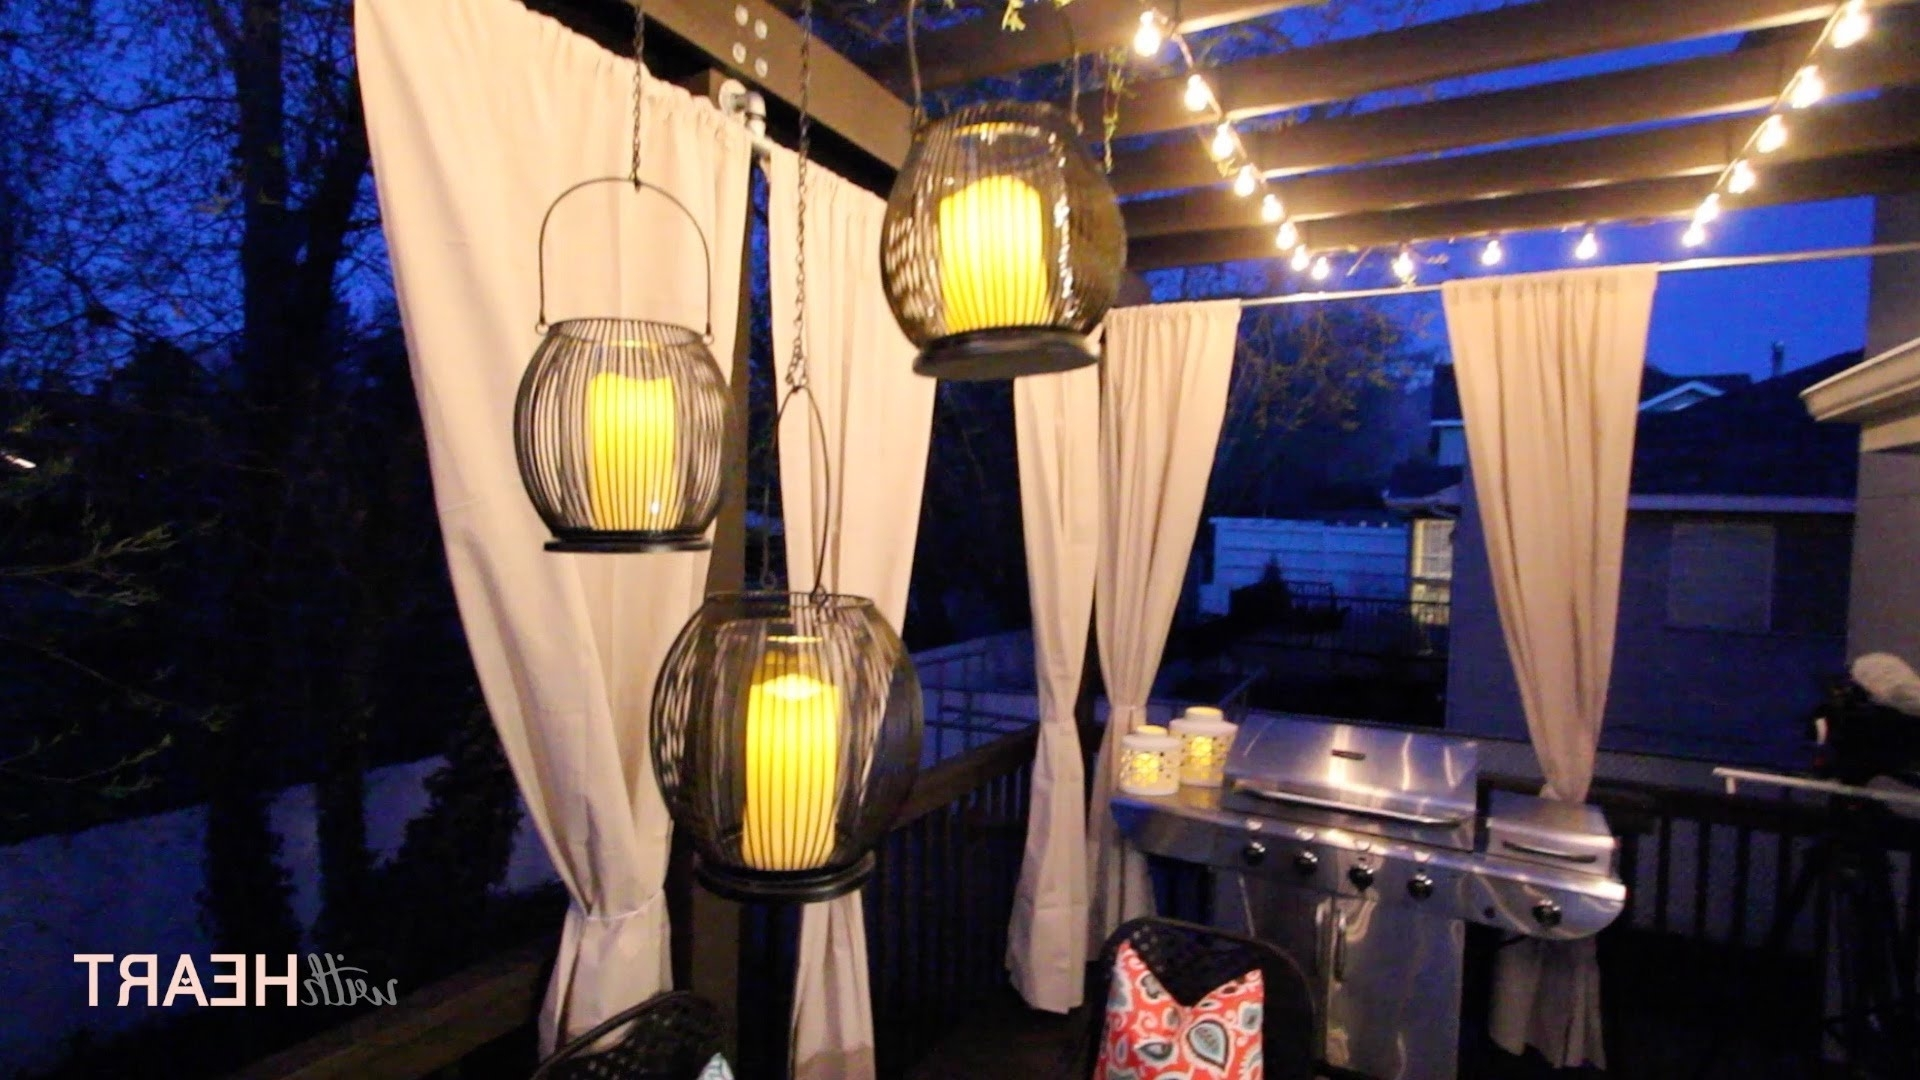 Outdoor String Lights And Hanging Lanterns Withheart Youtube With Regard To Famous Outdoor Hanging Lanterns For Patio (View 16 of 20)